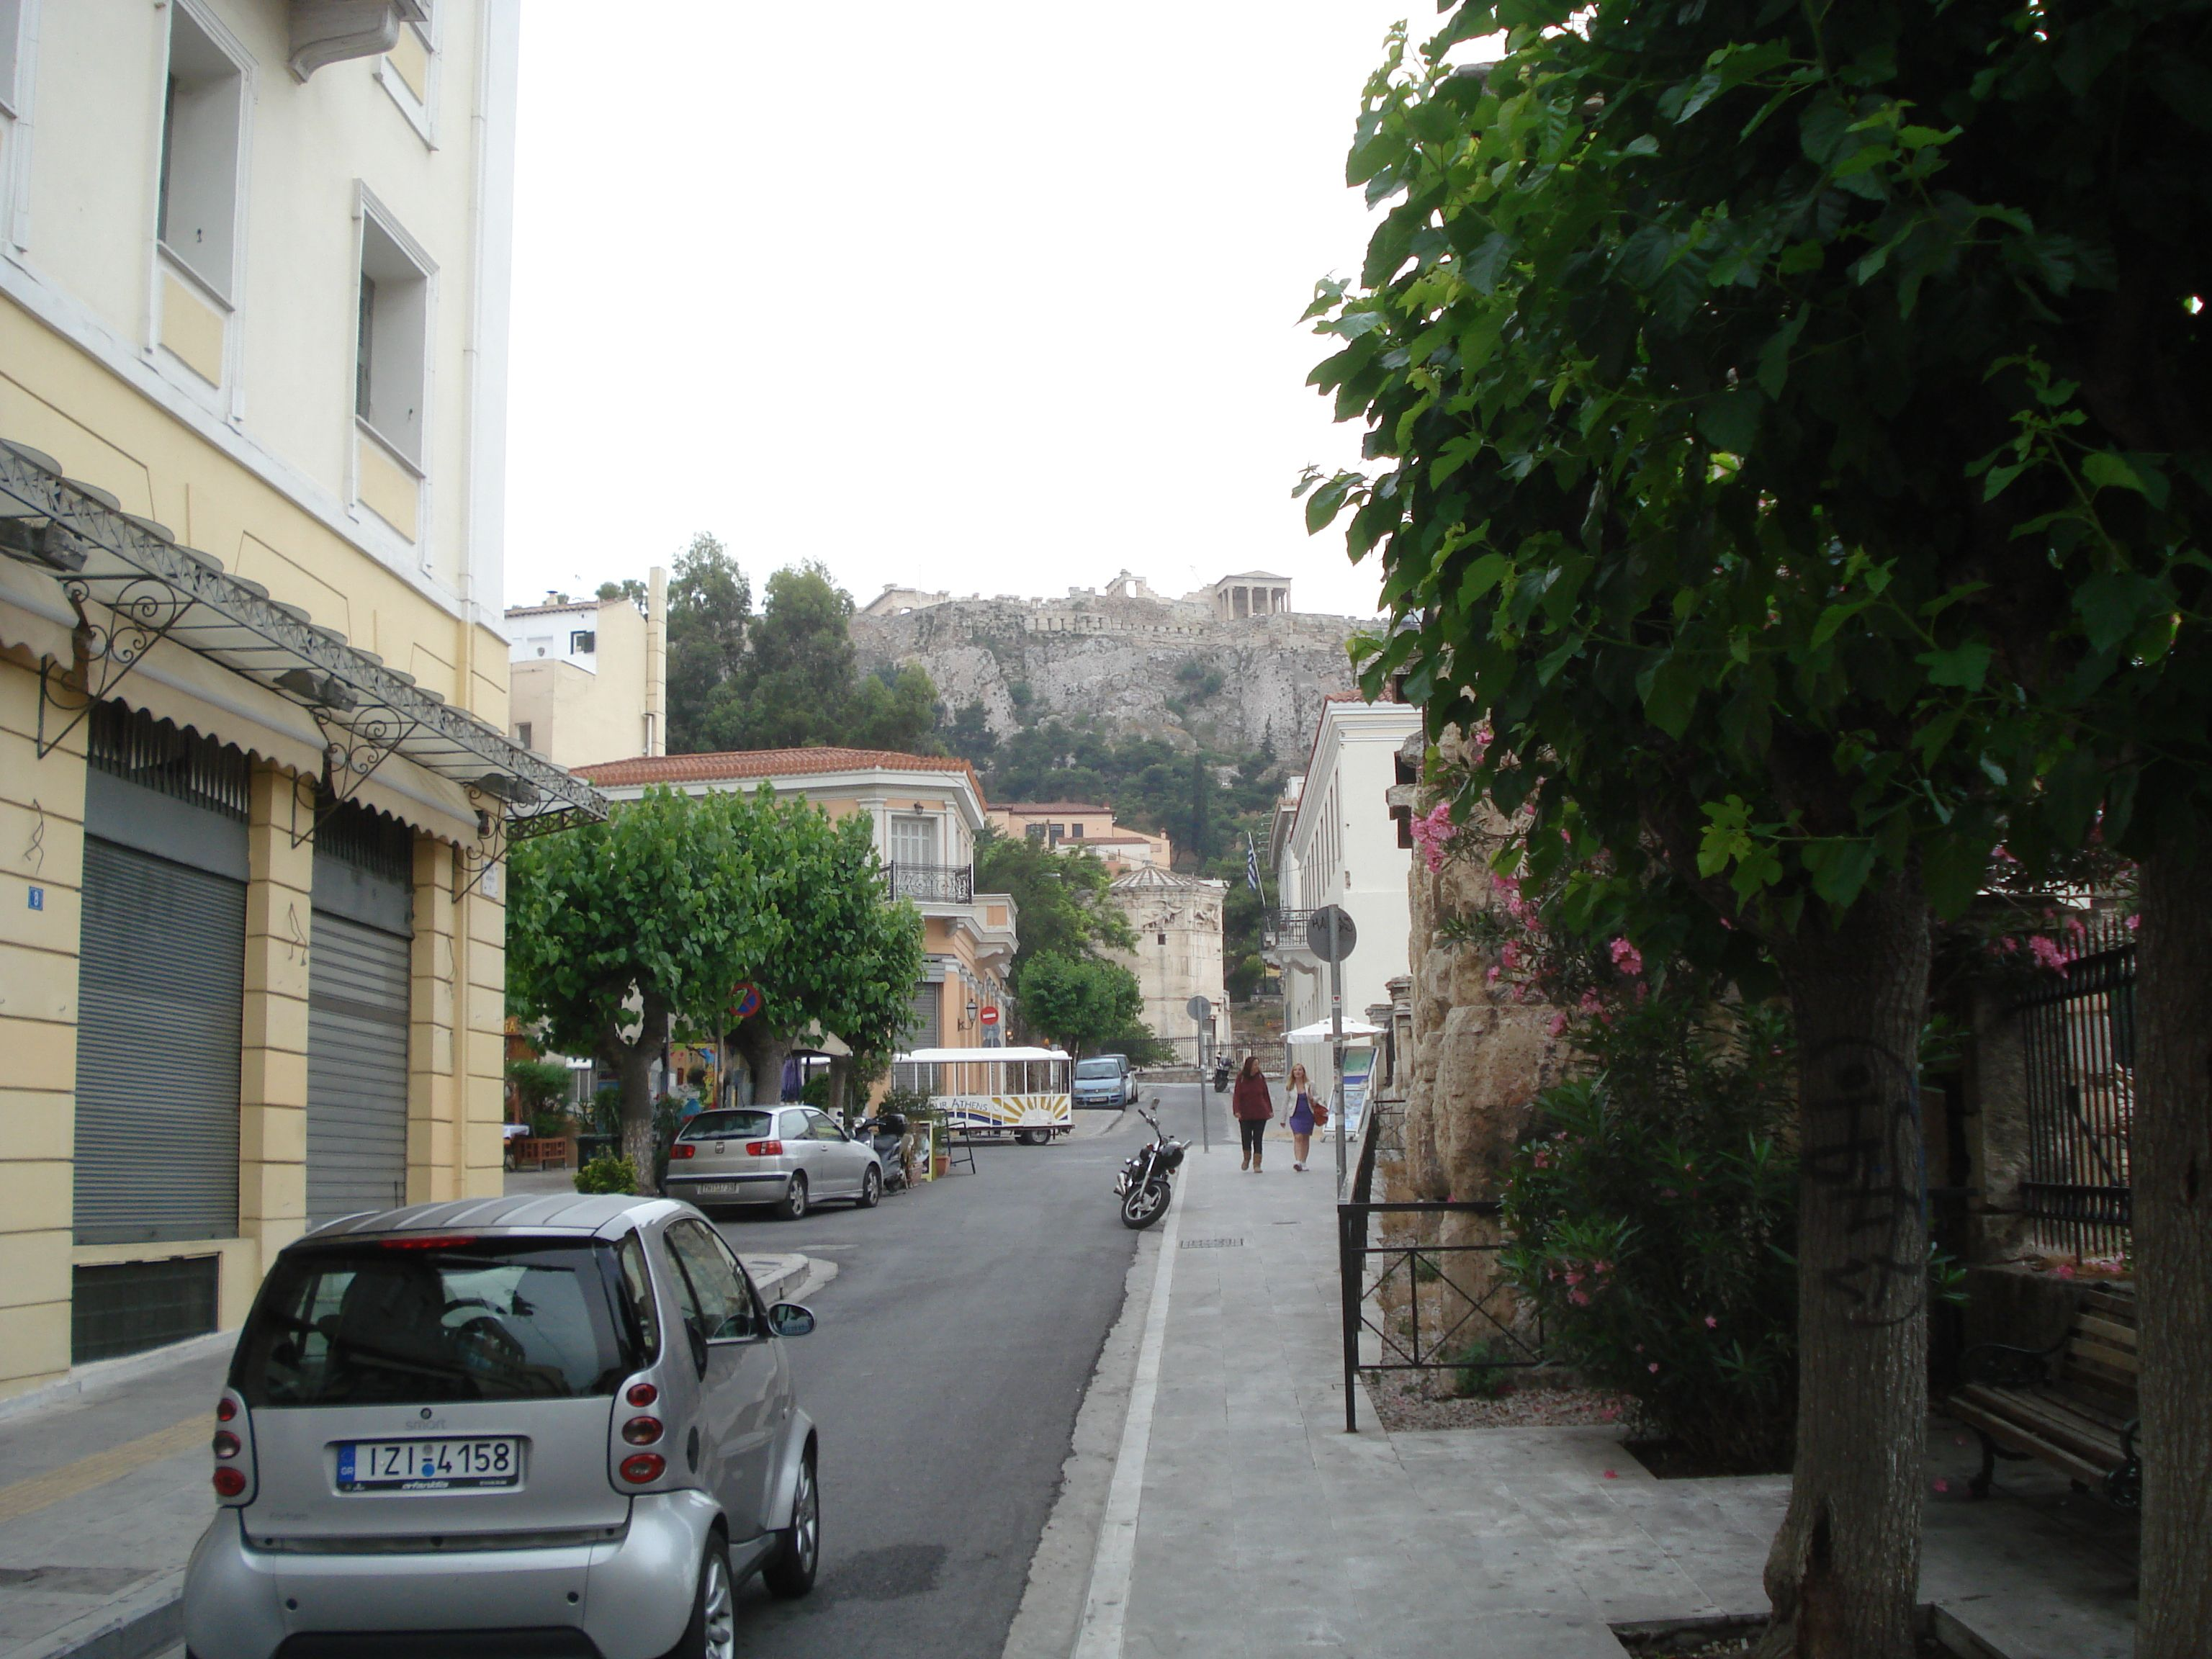 A Street Scene in Athens. The Akropolis is always present!